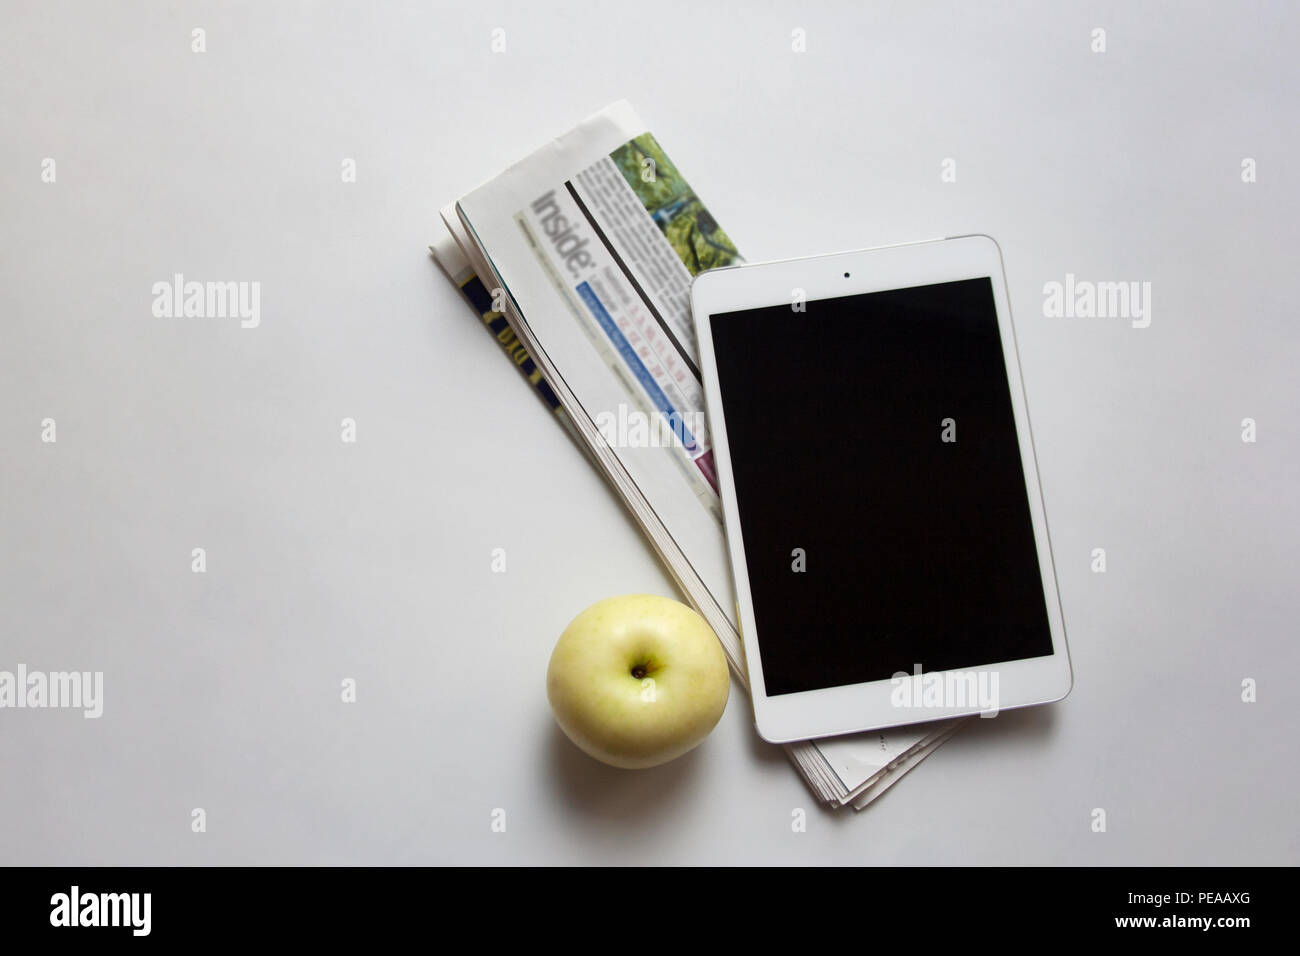 Digital tablet, folded newspaper and ripe apple isolated on white background with copy space Stock Photo